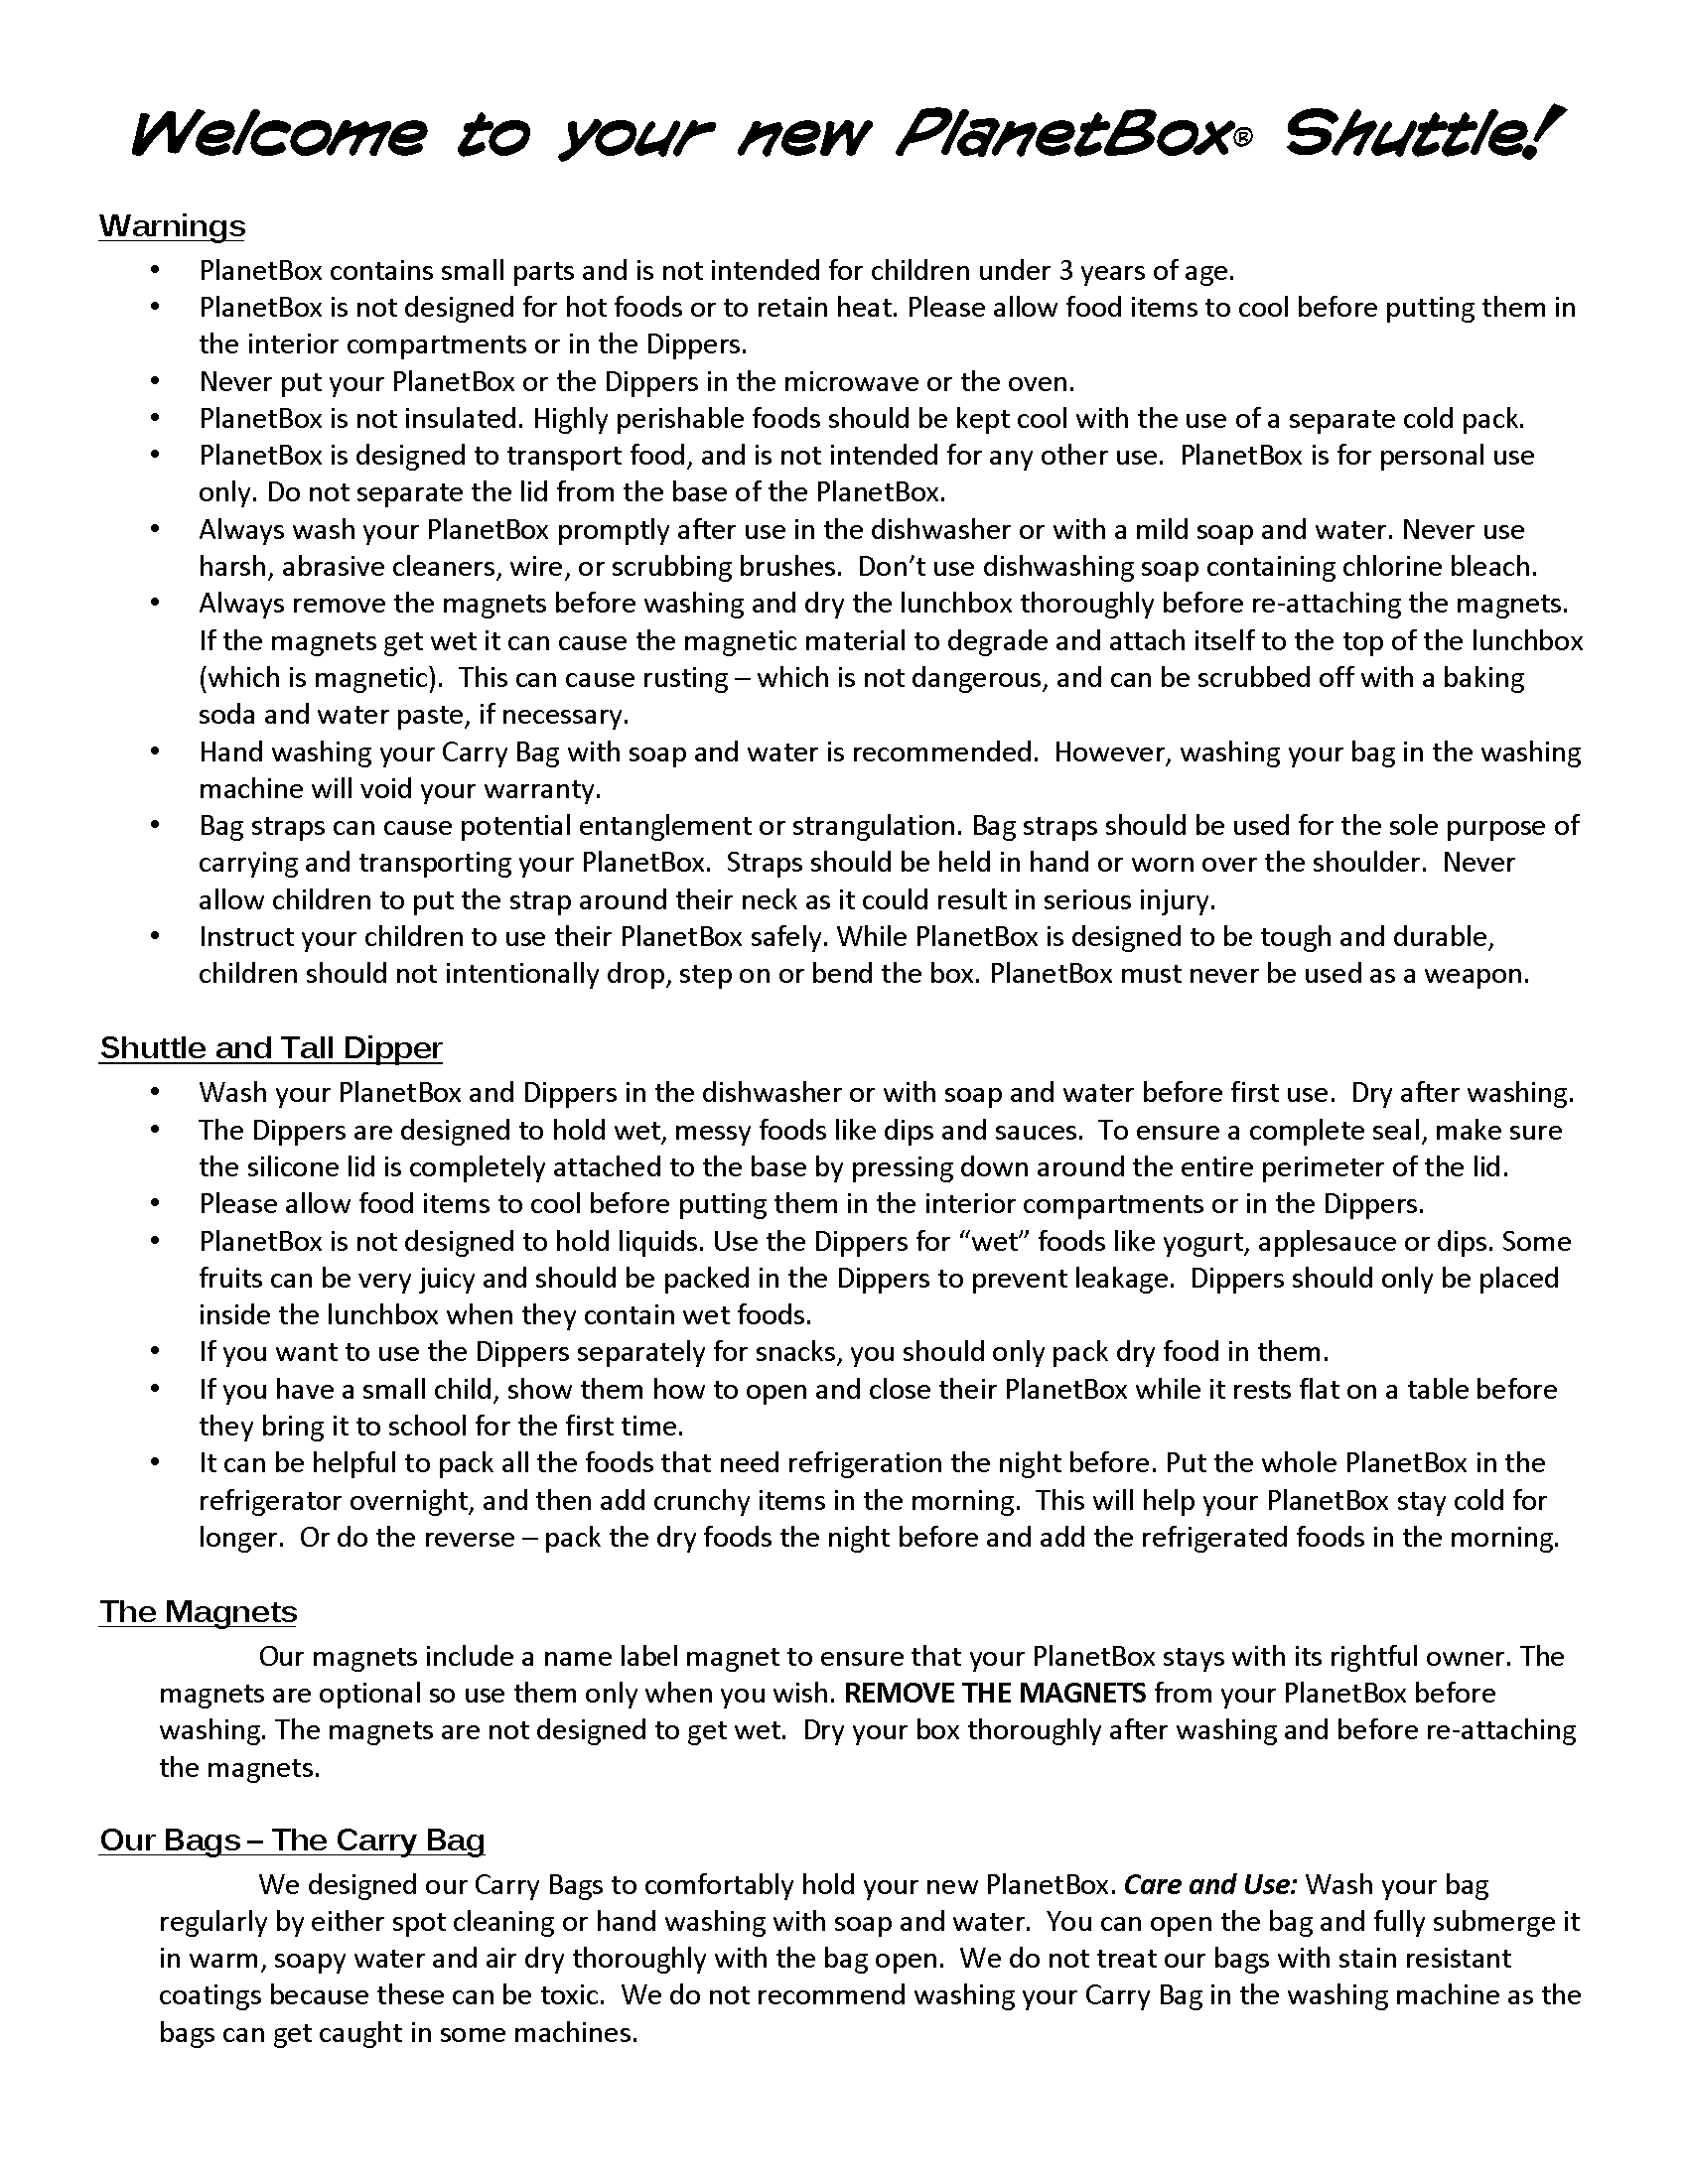 Shuttle instructions, page 1